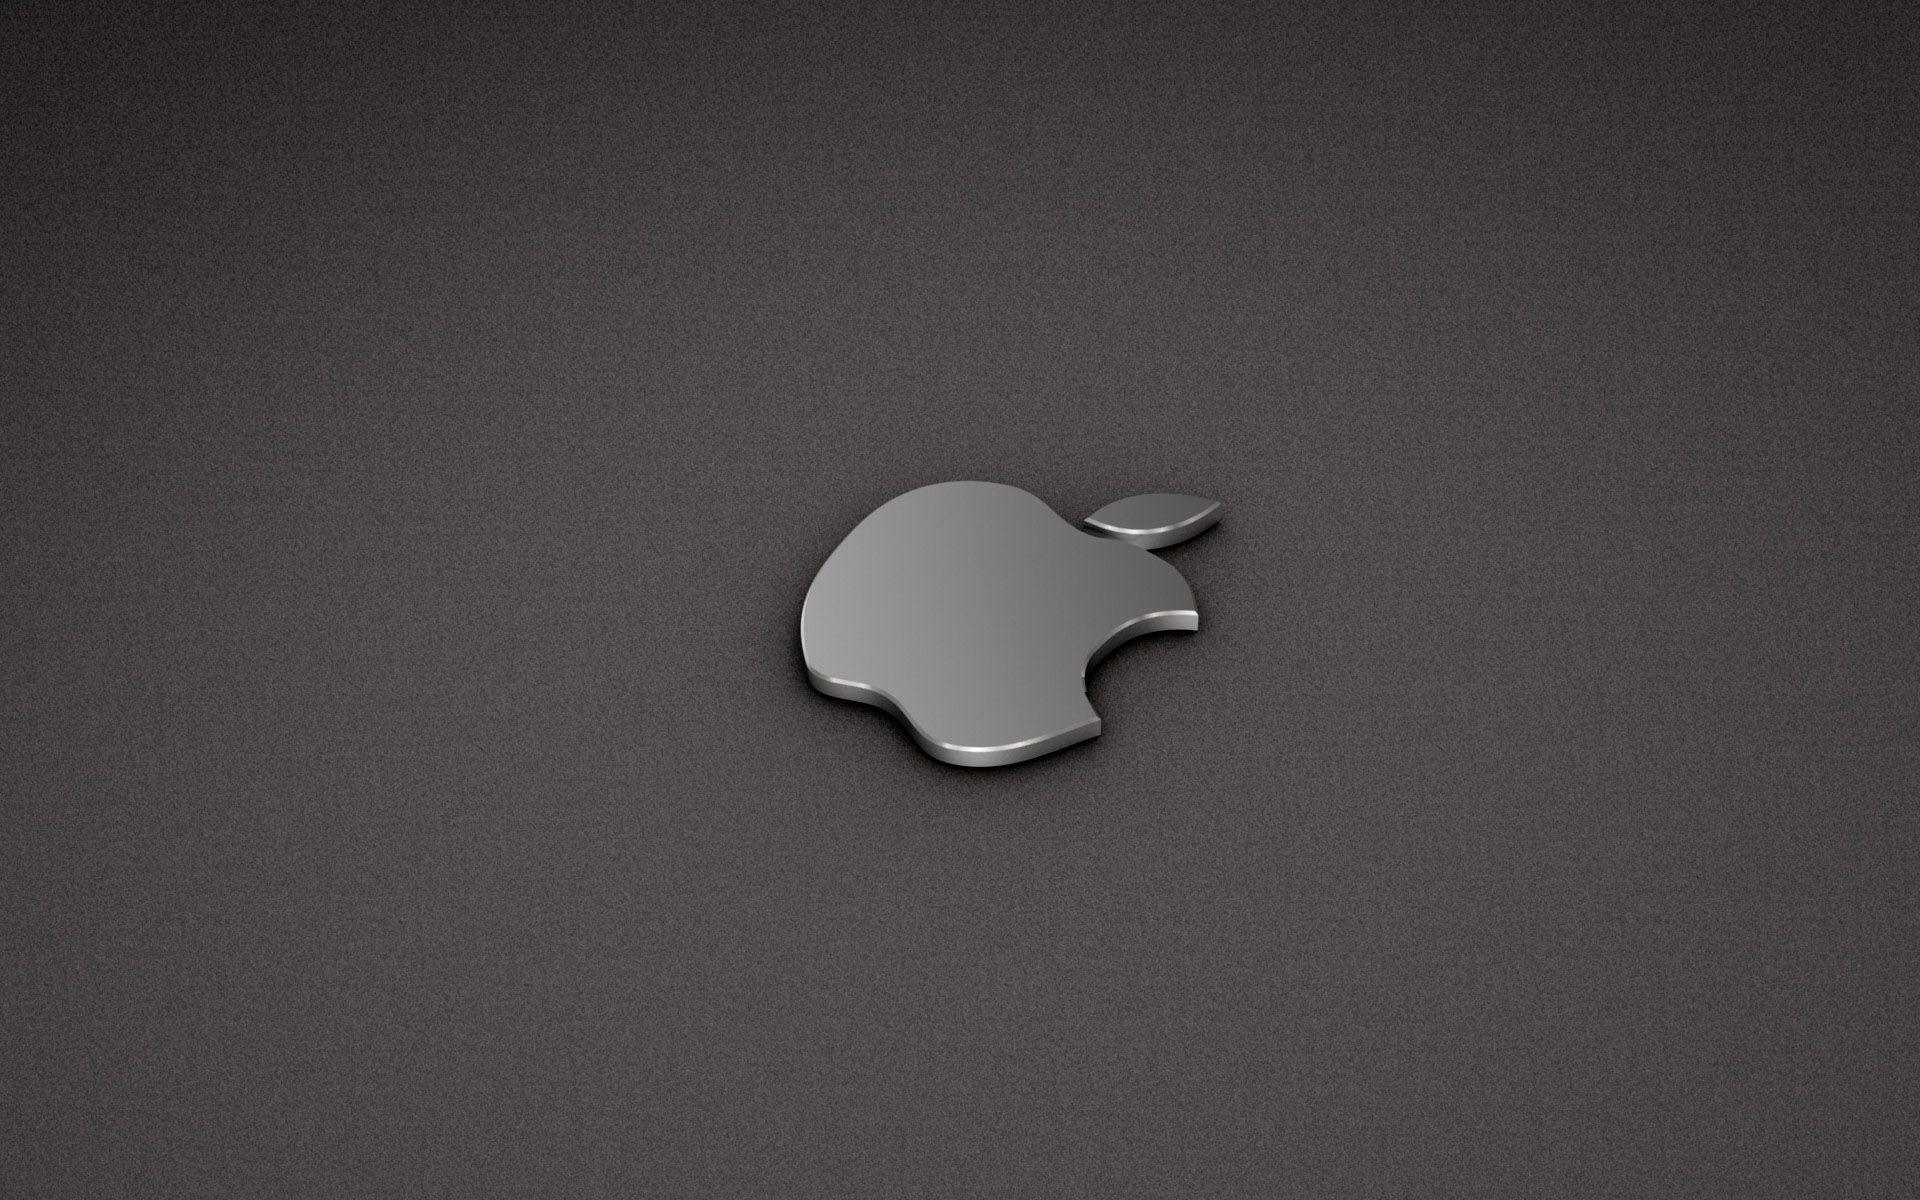 mac mini wallpaper 5427 download free hd desktop backgrounds and